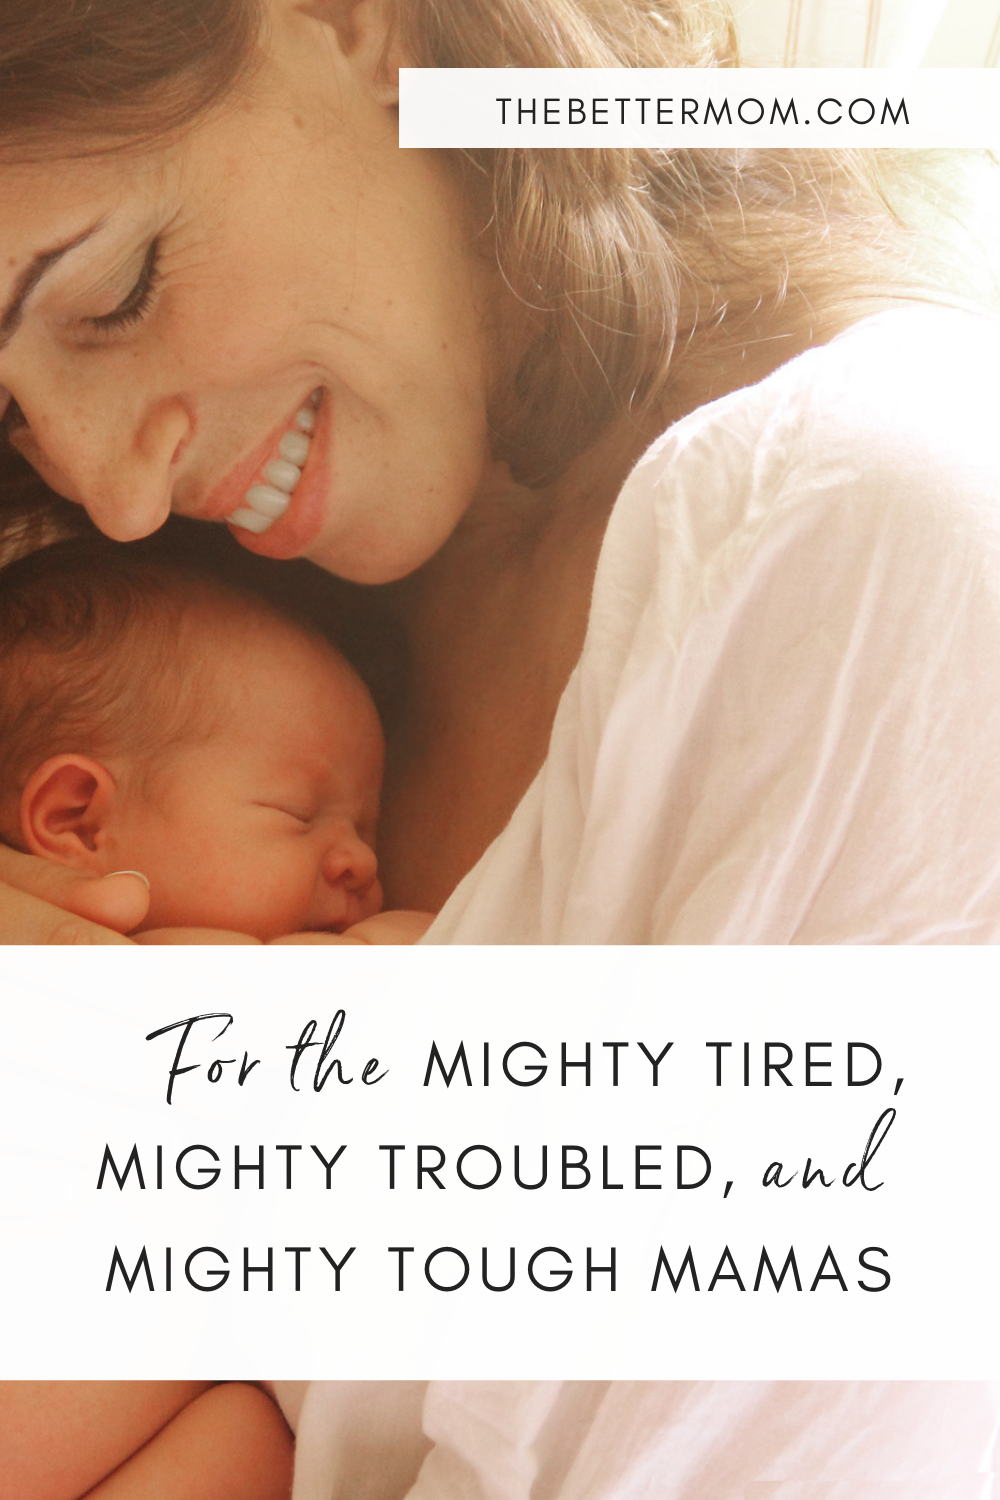 Do you experience frequent seasons of fatigue and weariness? As moms, it's unavoidable.  But while we may be mighty troubled with the hard things and mighty tired from the small hands that hold ours, we serve a mighty God who equips us to tackle this thing called motherhood. Let's seek Him together!